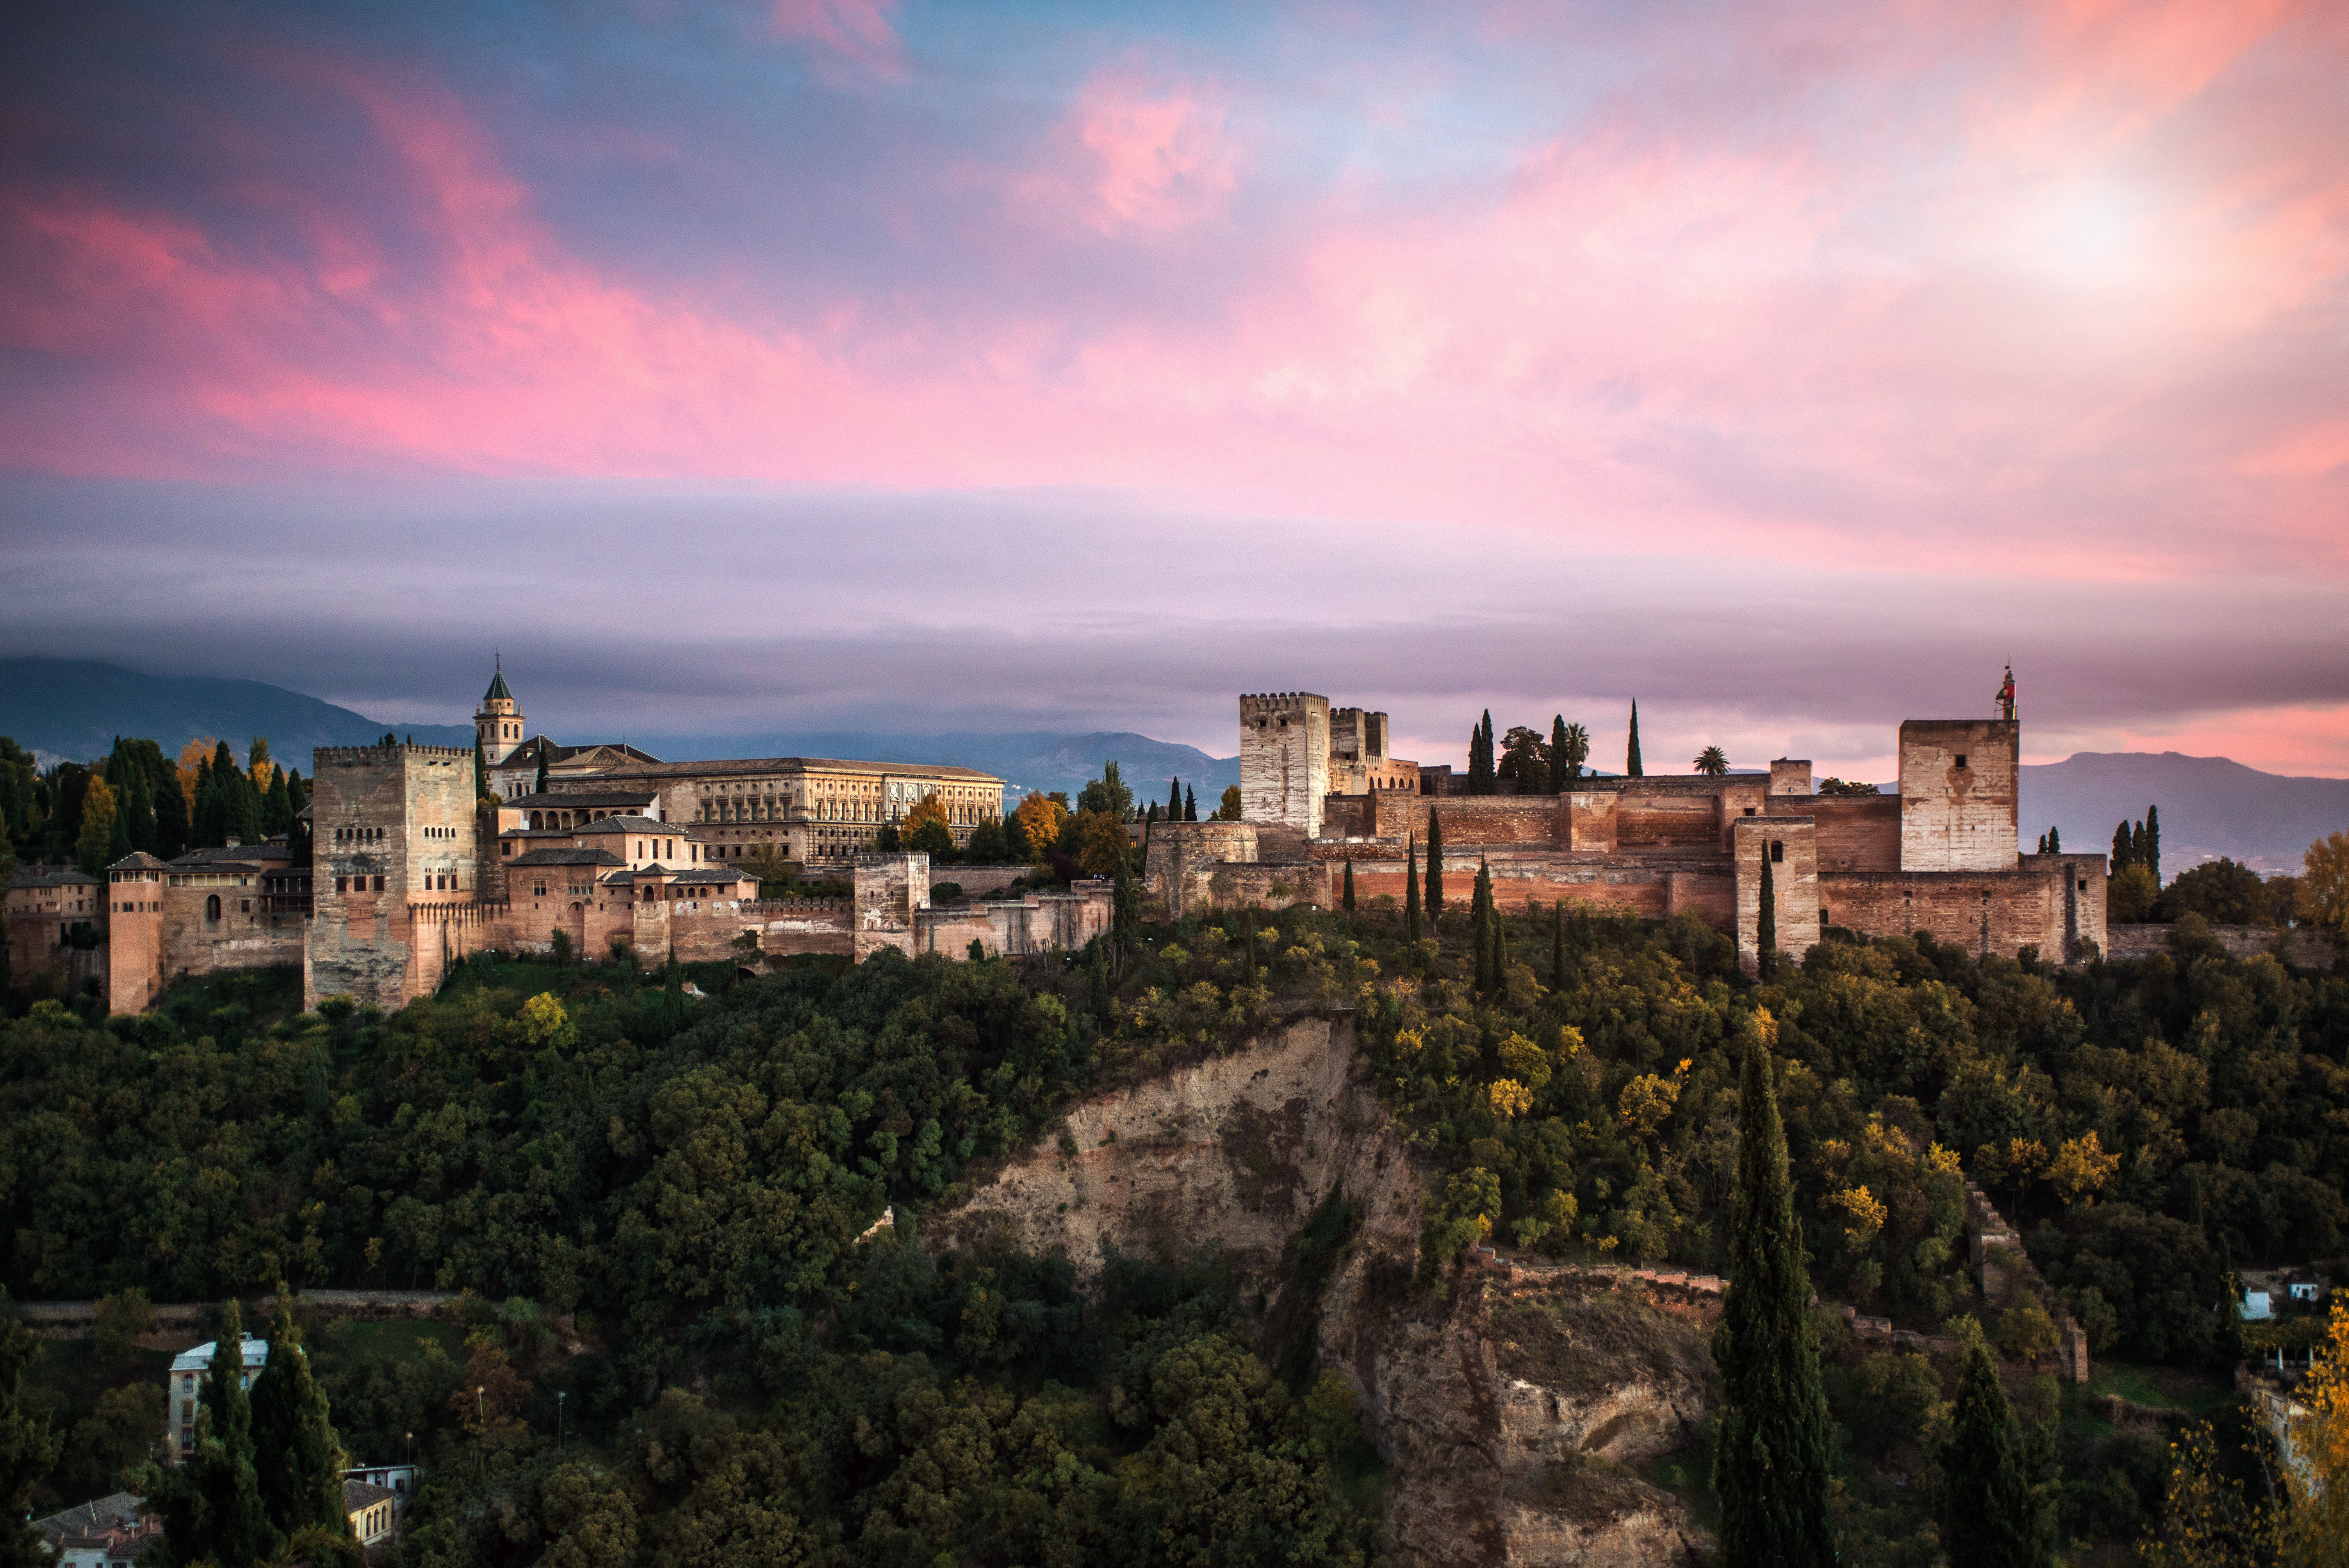 A view of the sunset over the Alhambra in Granada, the Spanish city this man was trying to visit.